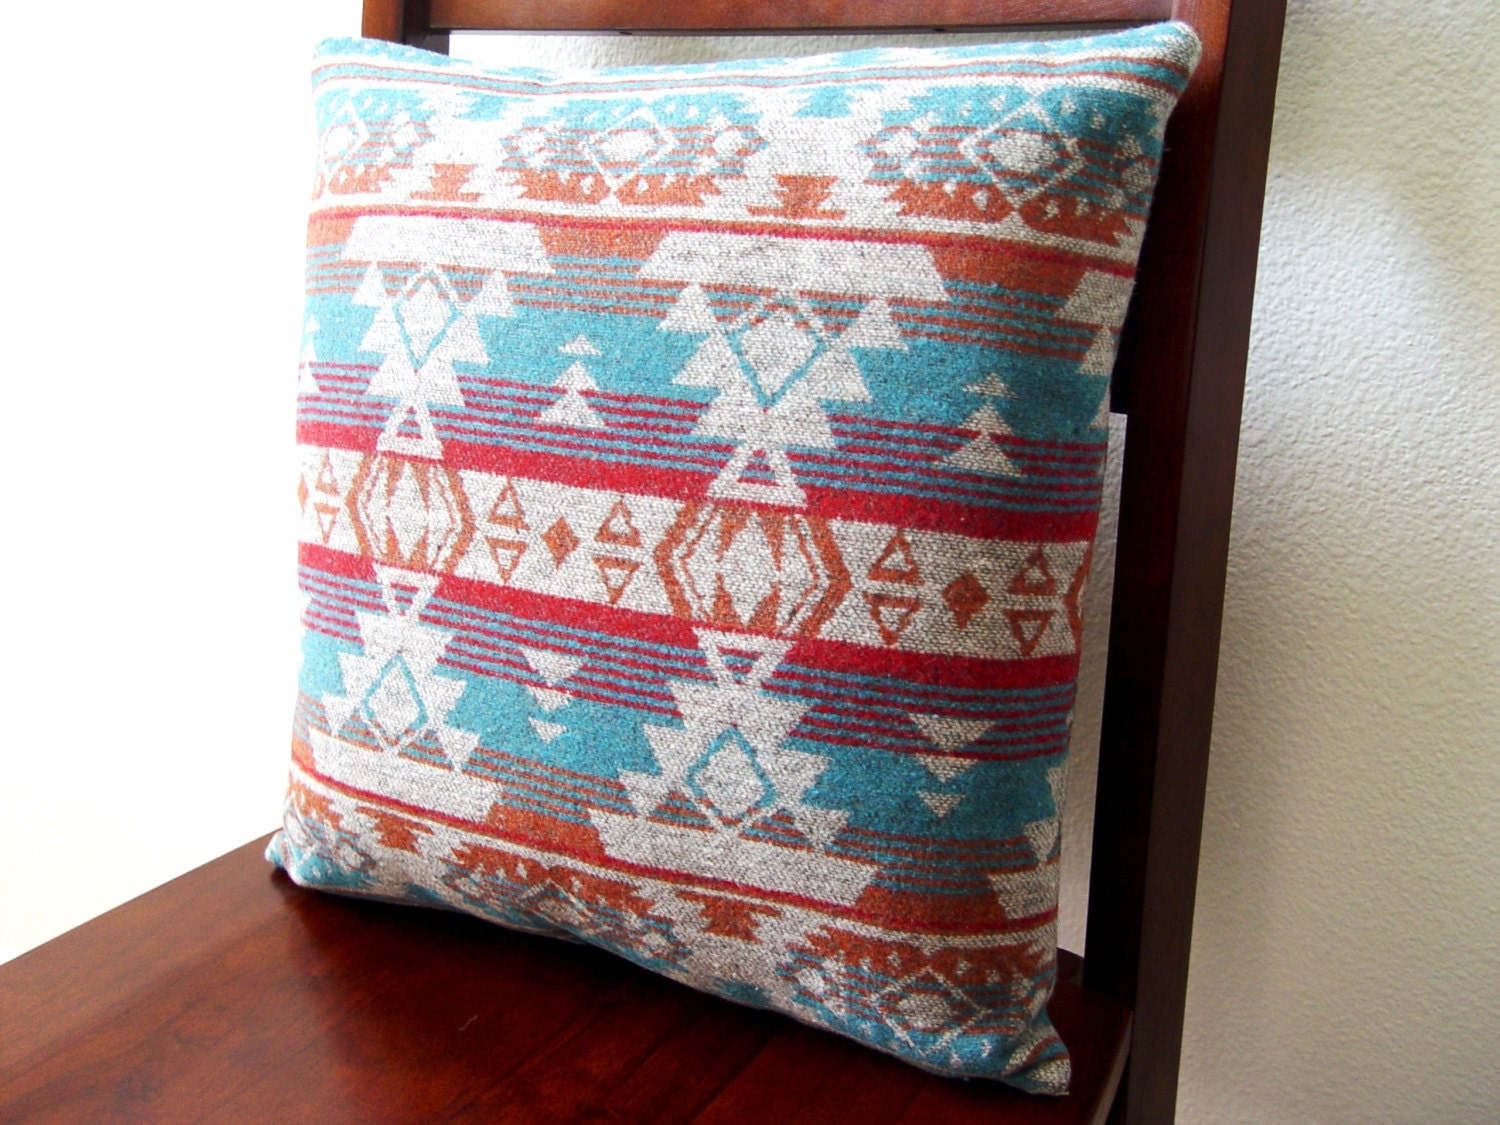 Southwestern Throw Pillows For Couch : Southwestern Decorative Pillow 15 x 15 by NakedTurtleCreations